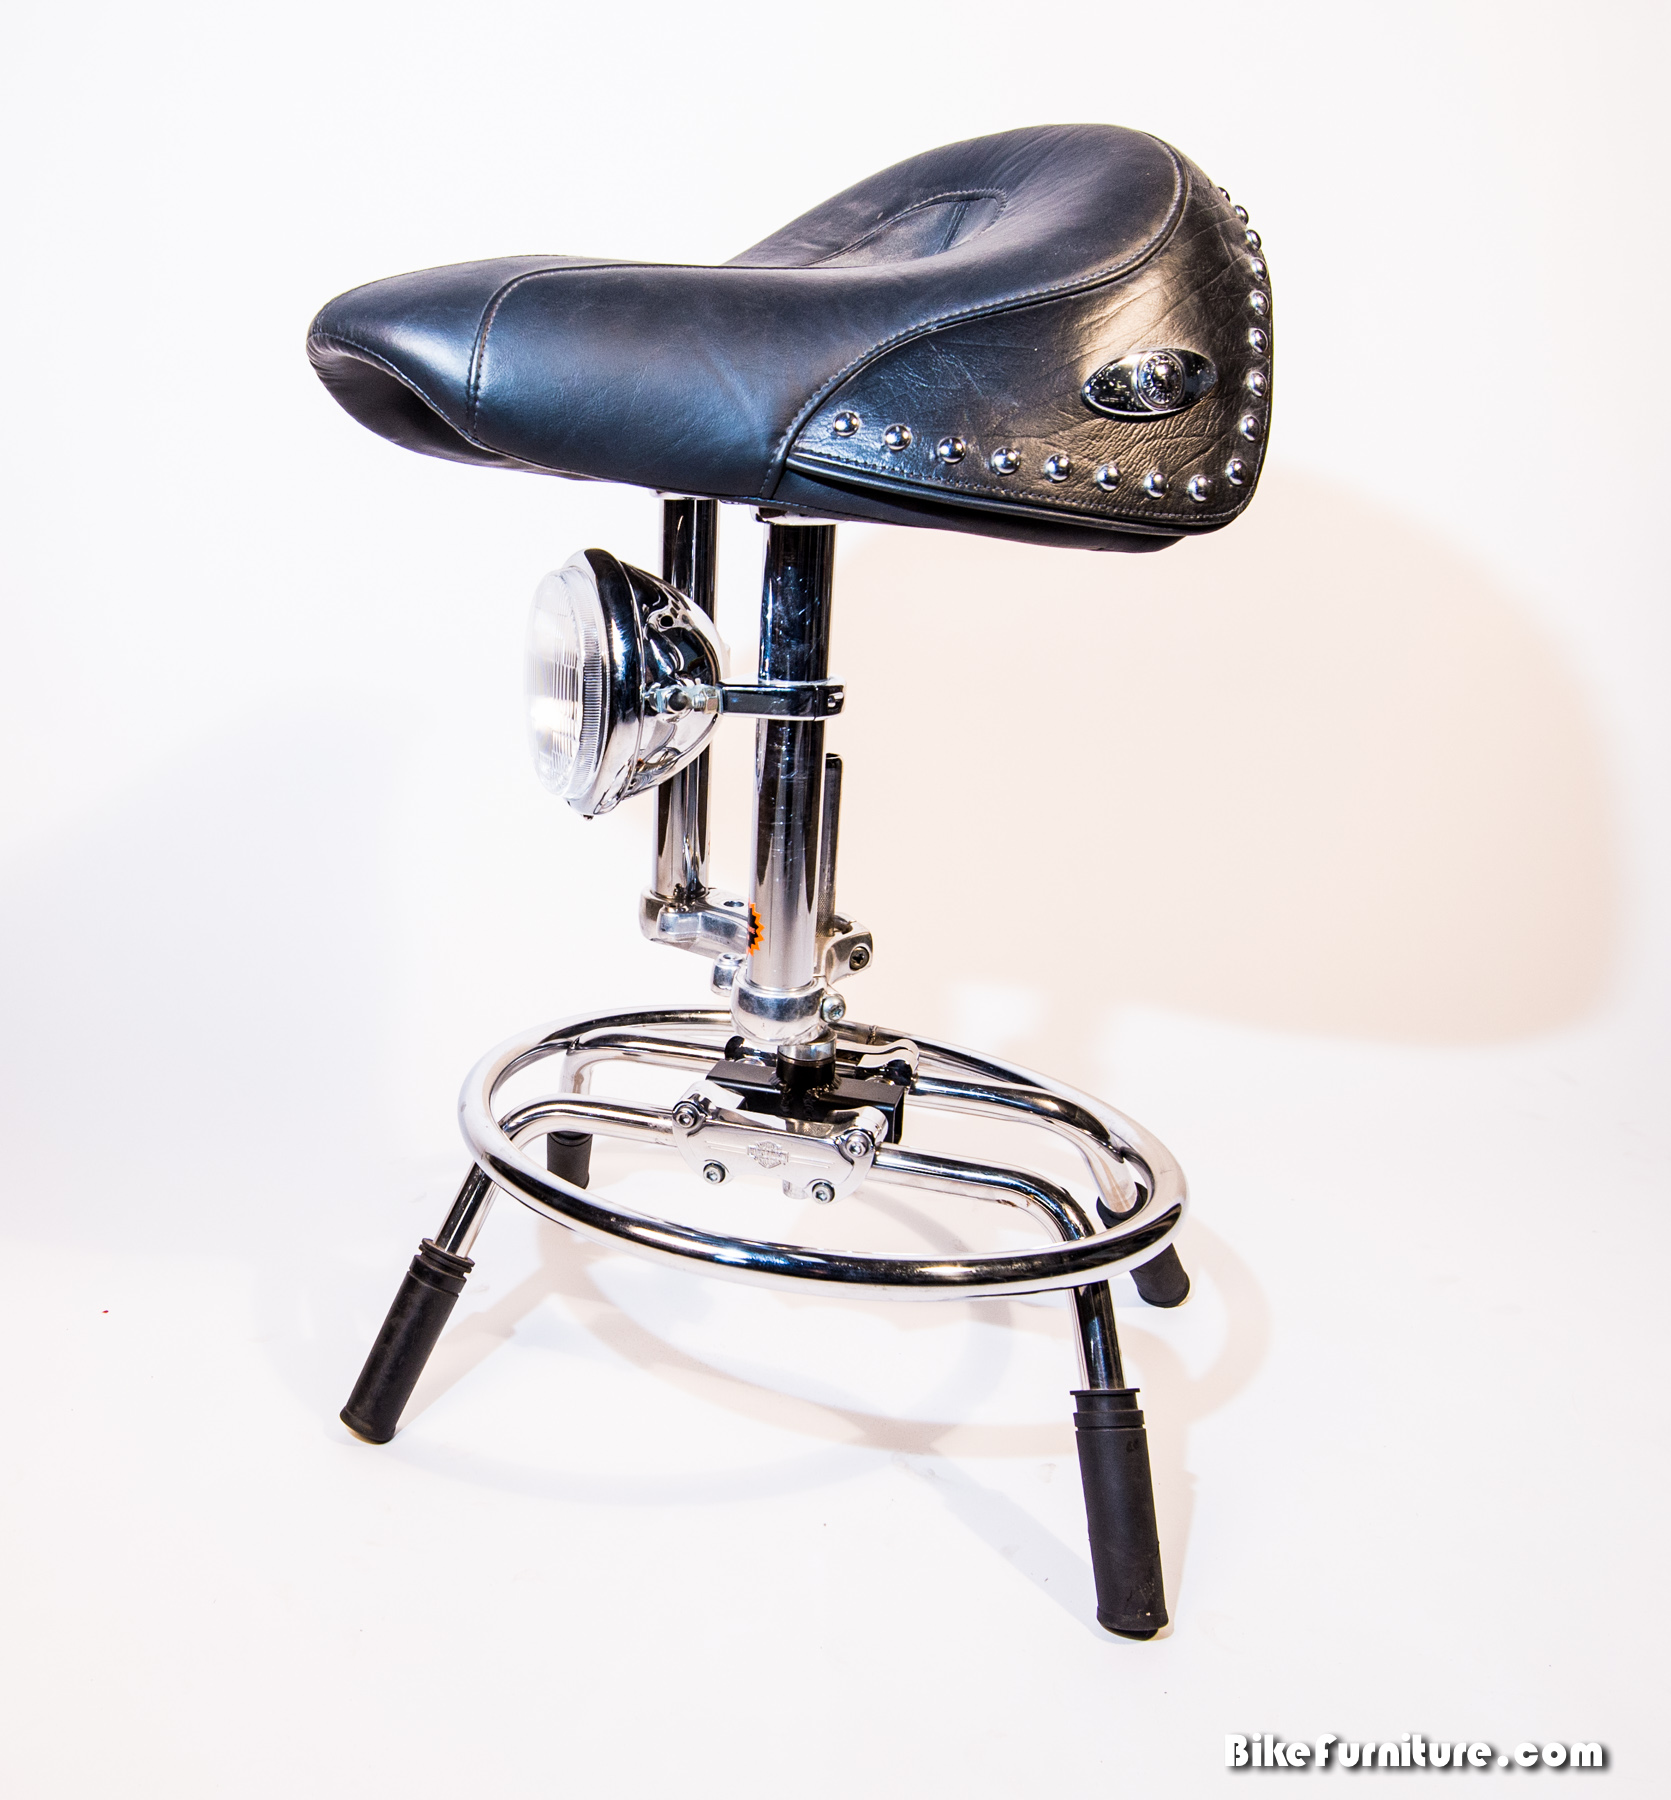 Moto stool saddle - Imagine shorter, and with out foot ring